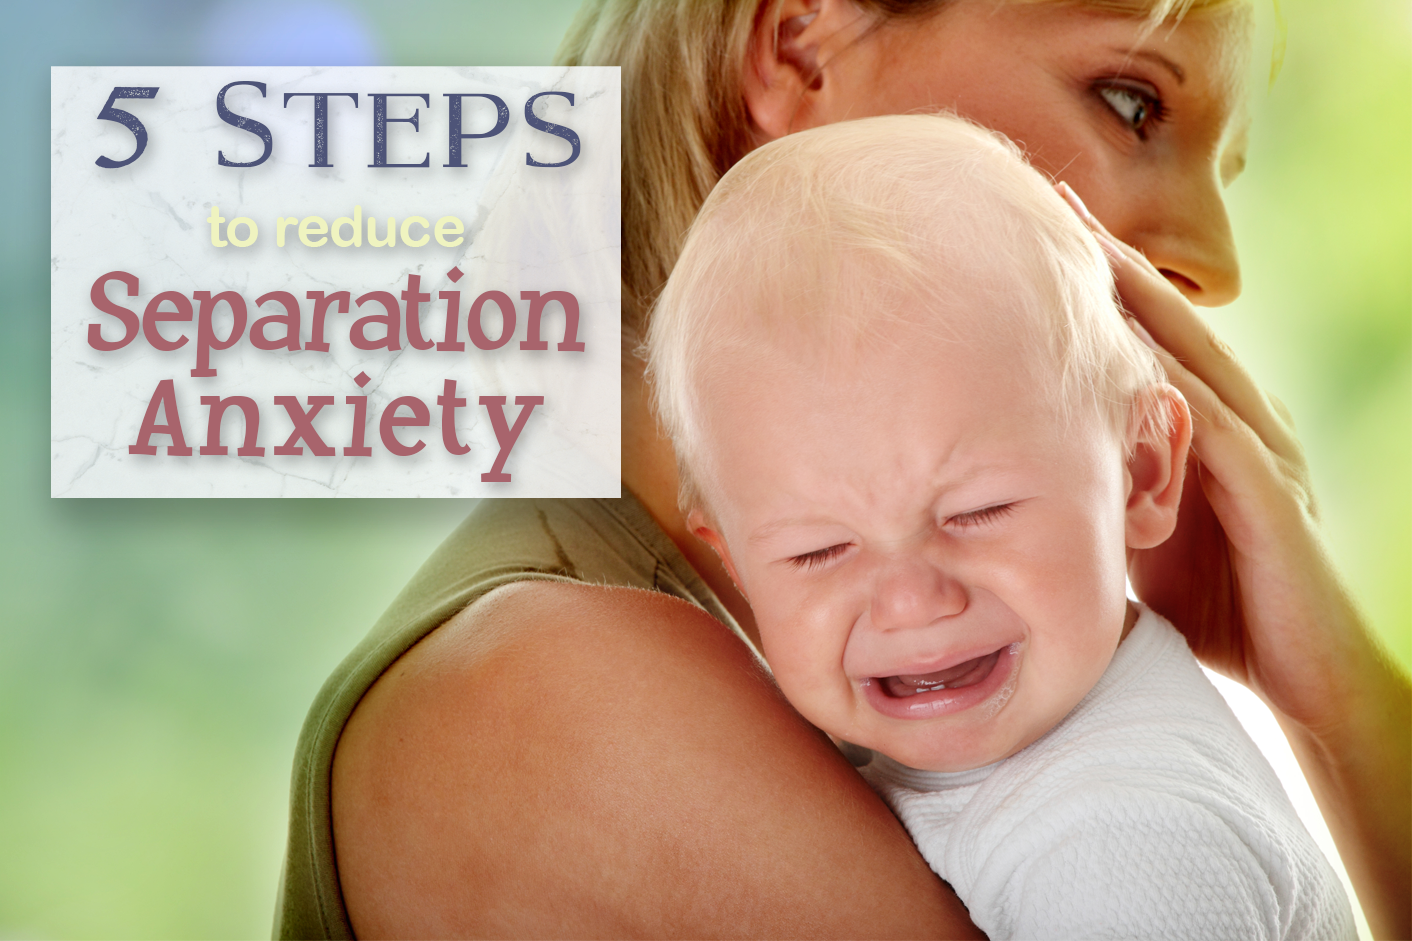 5 Steps to Reduce Separation Anxiety in Children